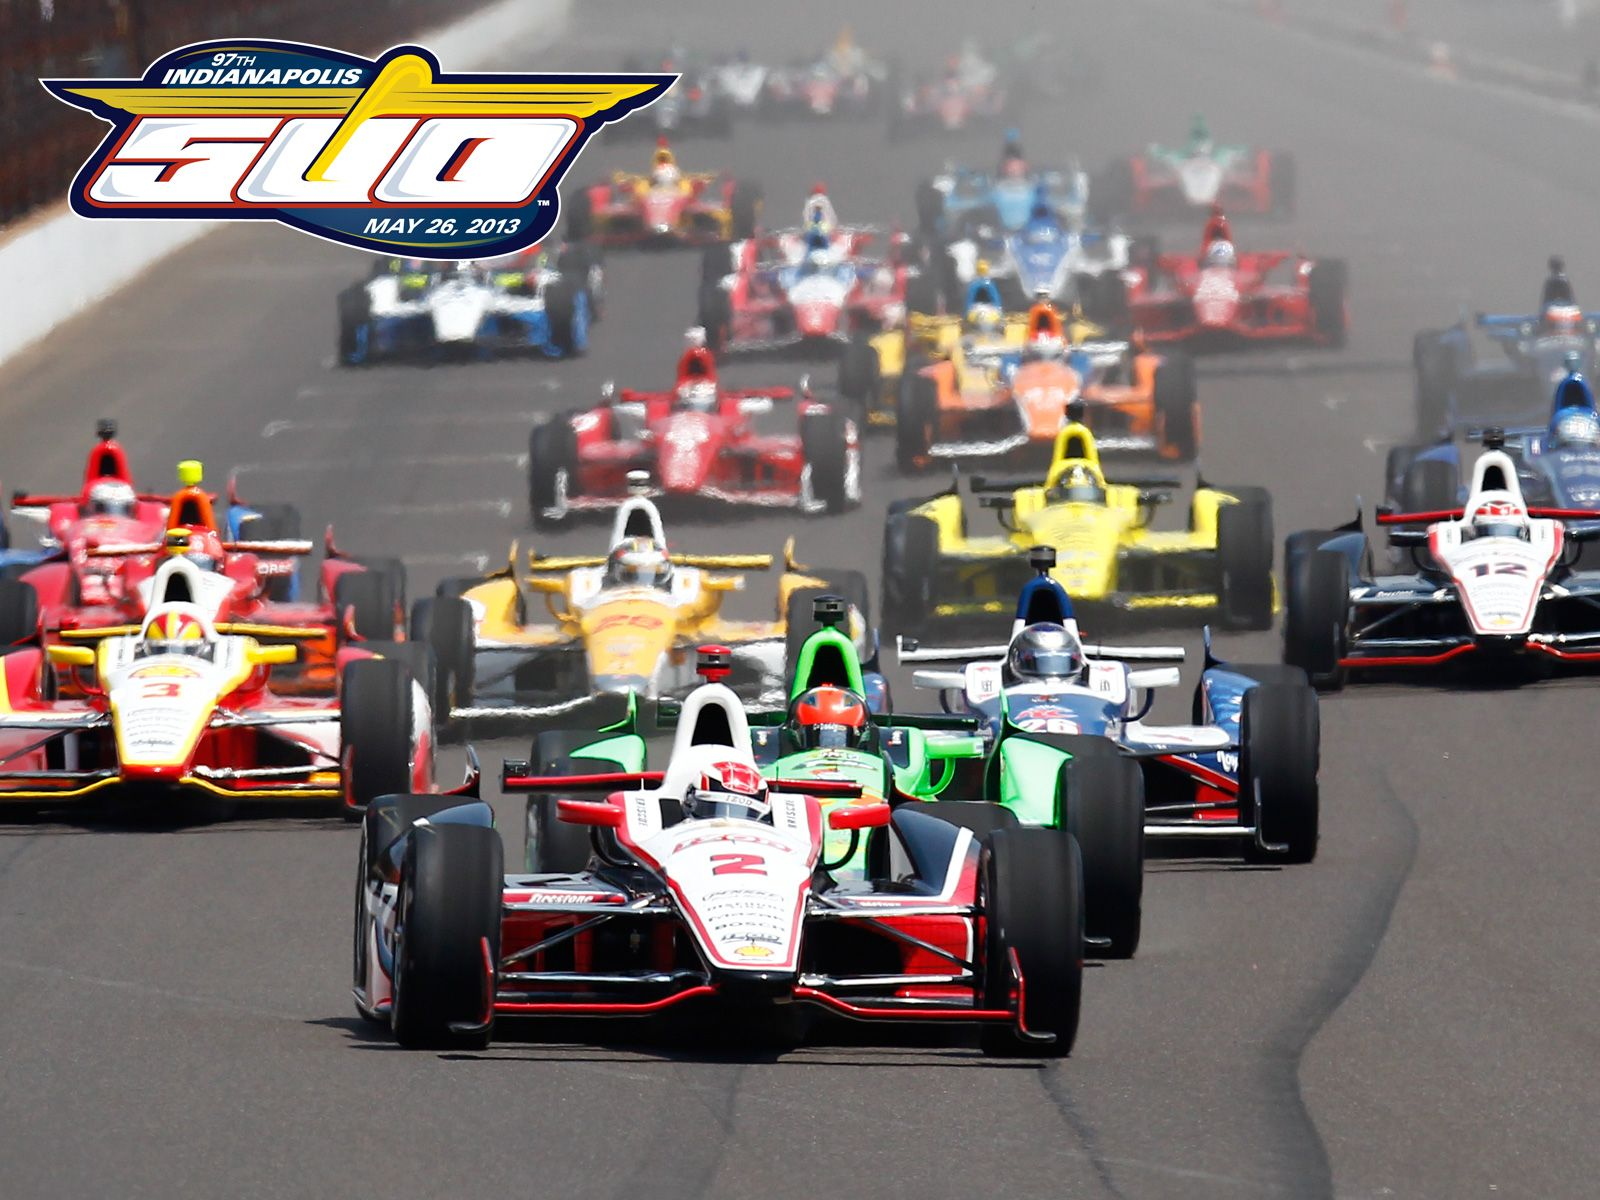 Indy 500 photos Indy 500   Wallpapers   Indianapolis 500 1600x1200